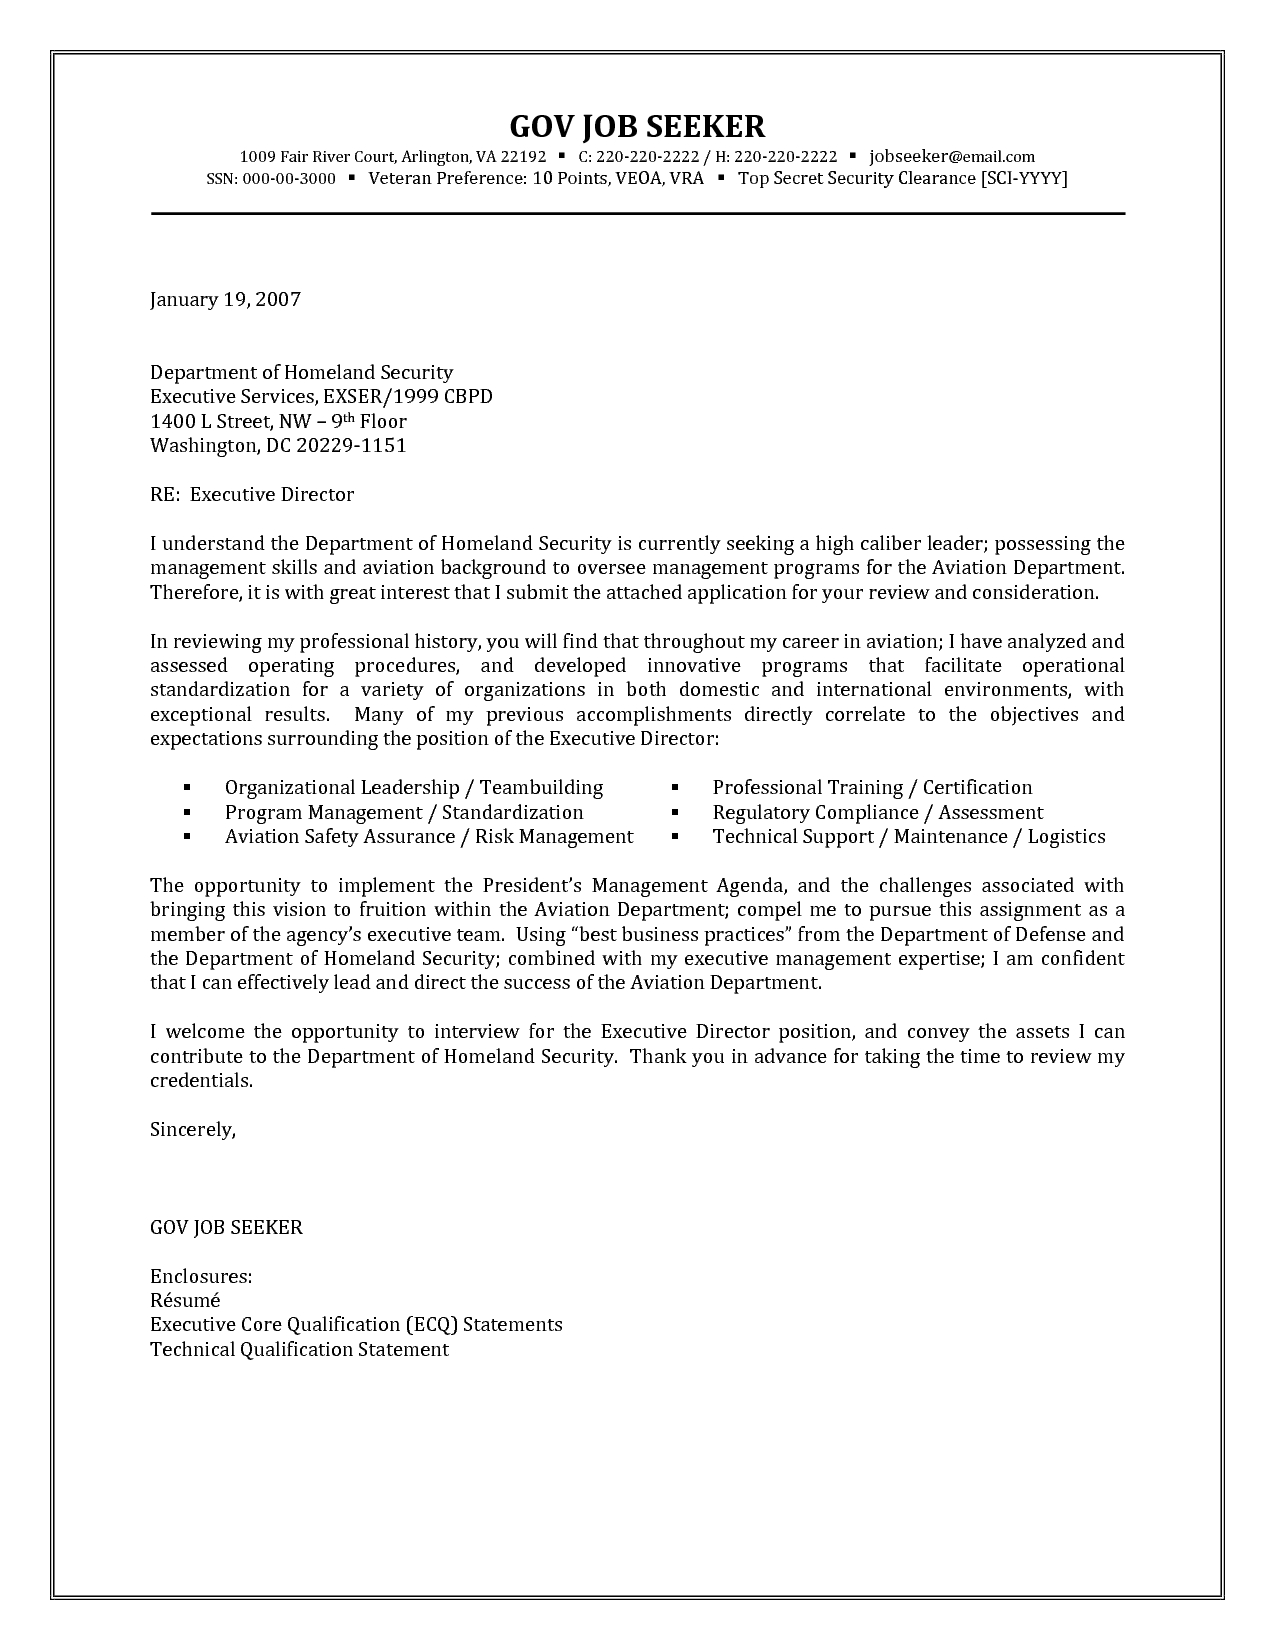 Government Job Cover Letter Template - Cover Letter Example Cover Letter Sample Jobcover Letter Samples for